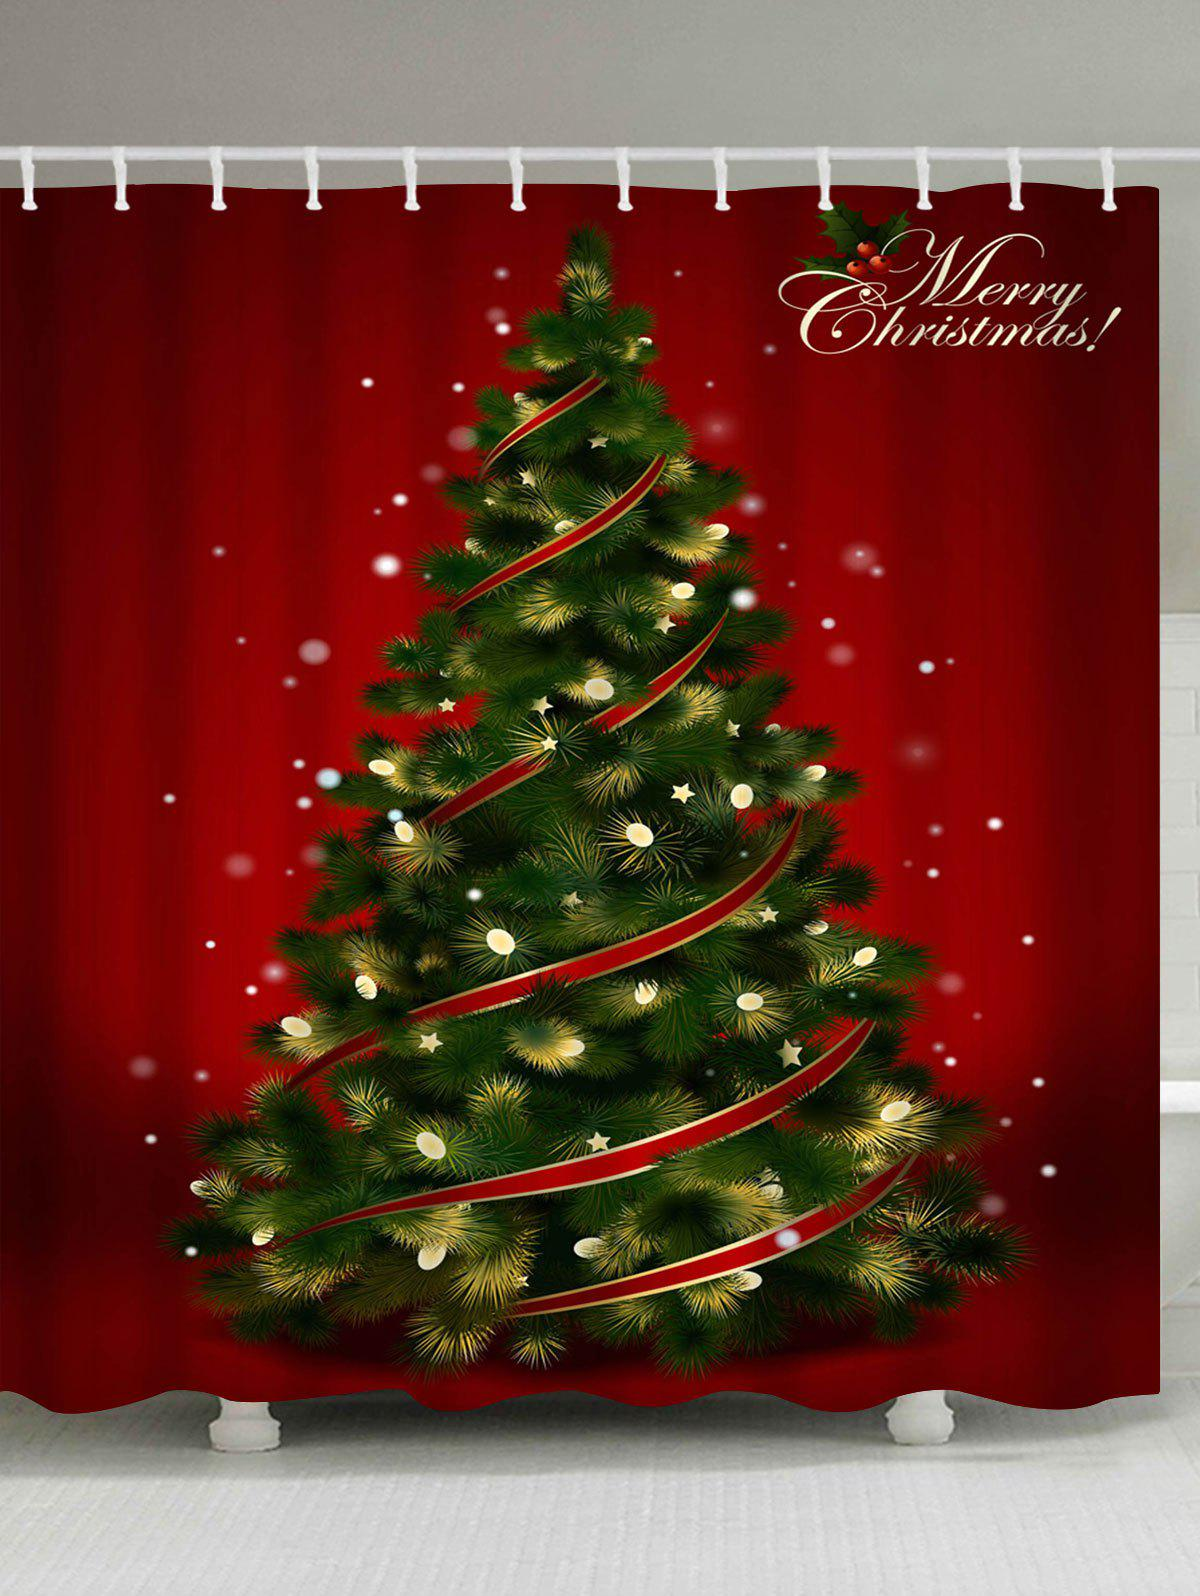 Polyester Waterproof Christmas Tree Print Bath CurtainHOME<br><br>Size: W71 INCH * L71 INCH; Color: RED; Products Type: Shower Curtains; Materials: Polyester; Pattern: Christmas Tree; Style: Festival; Number of Hook Holes: W59 inch*L71 inch: 10; W71 inch*L71 inch: 12; W71 inch*L79 inch: 12; Package Contents: 1 x Shower Curtain 1 x Hooks (Set);